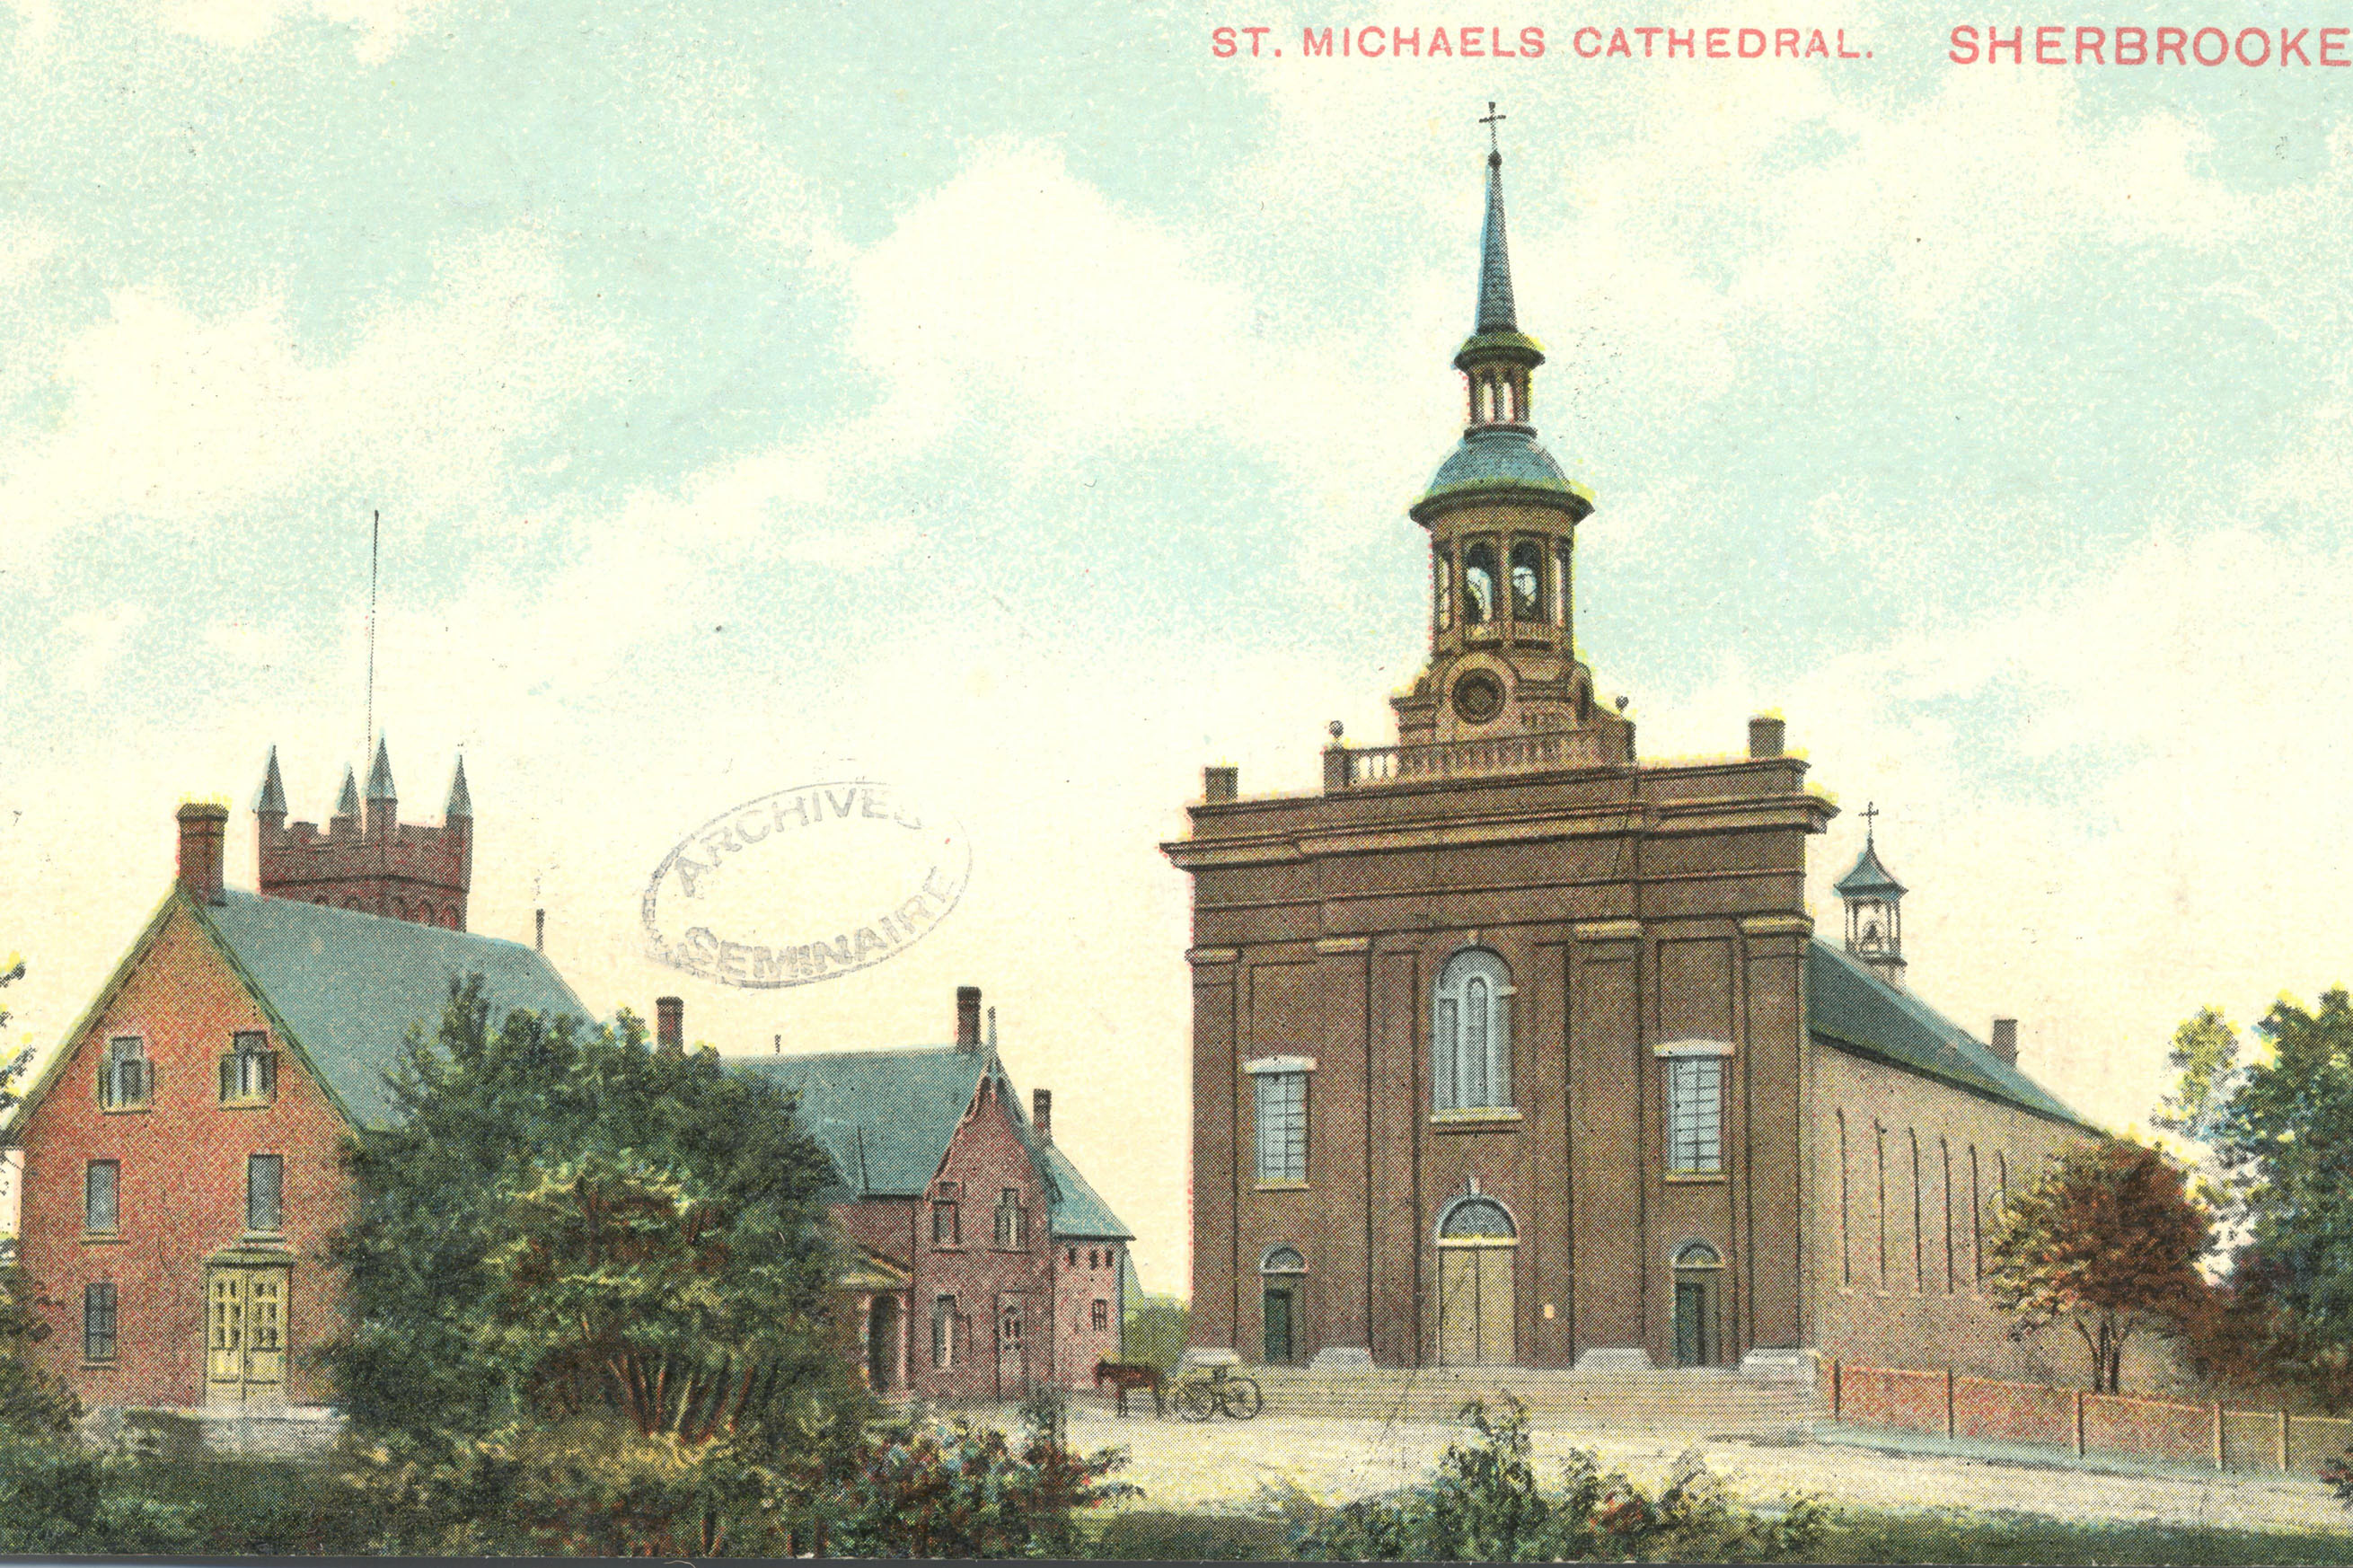 First cathedral Sherbrooke